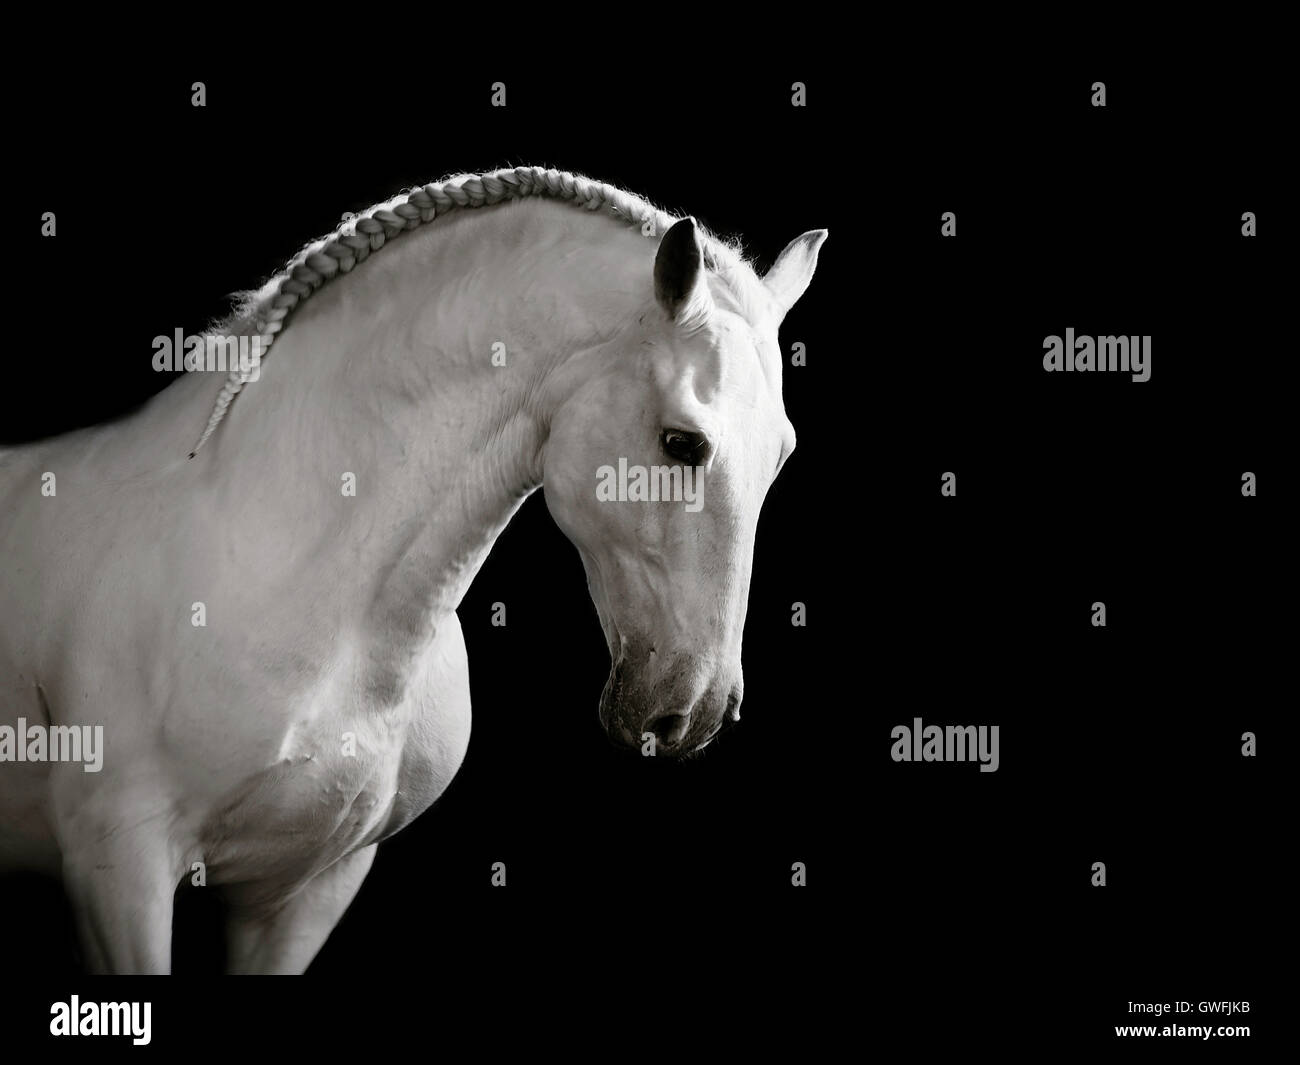 White Lusitano stallion cantering gracefully, head bowed - Stock Image